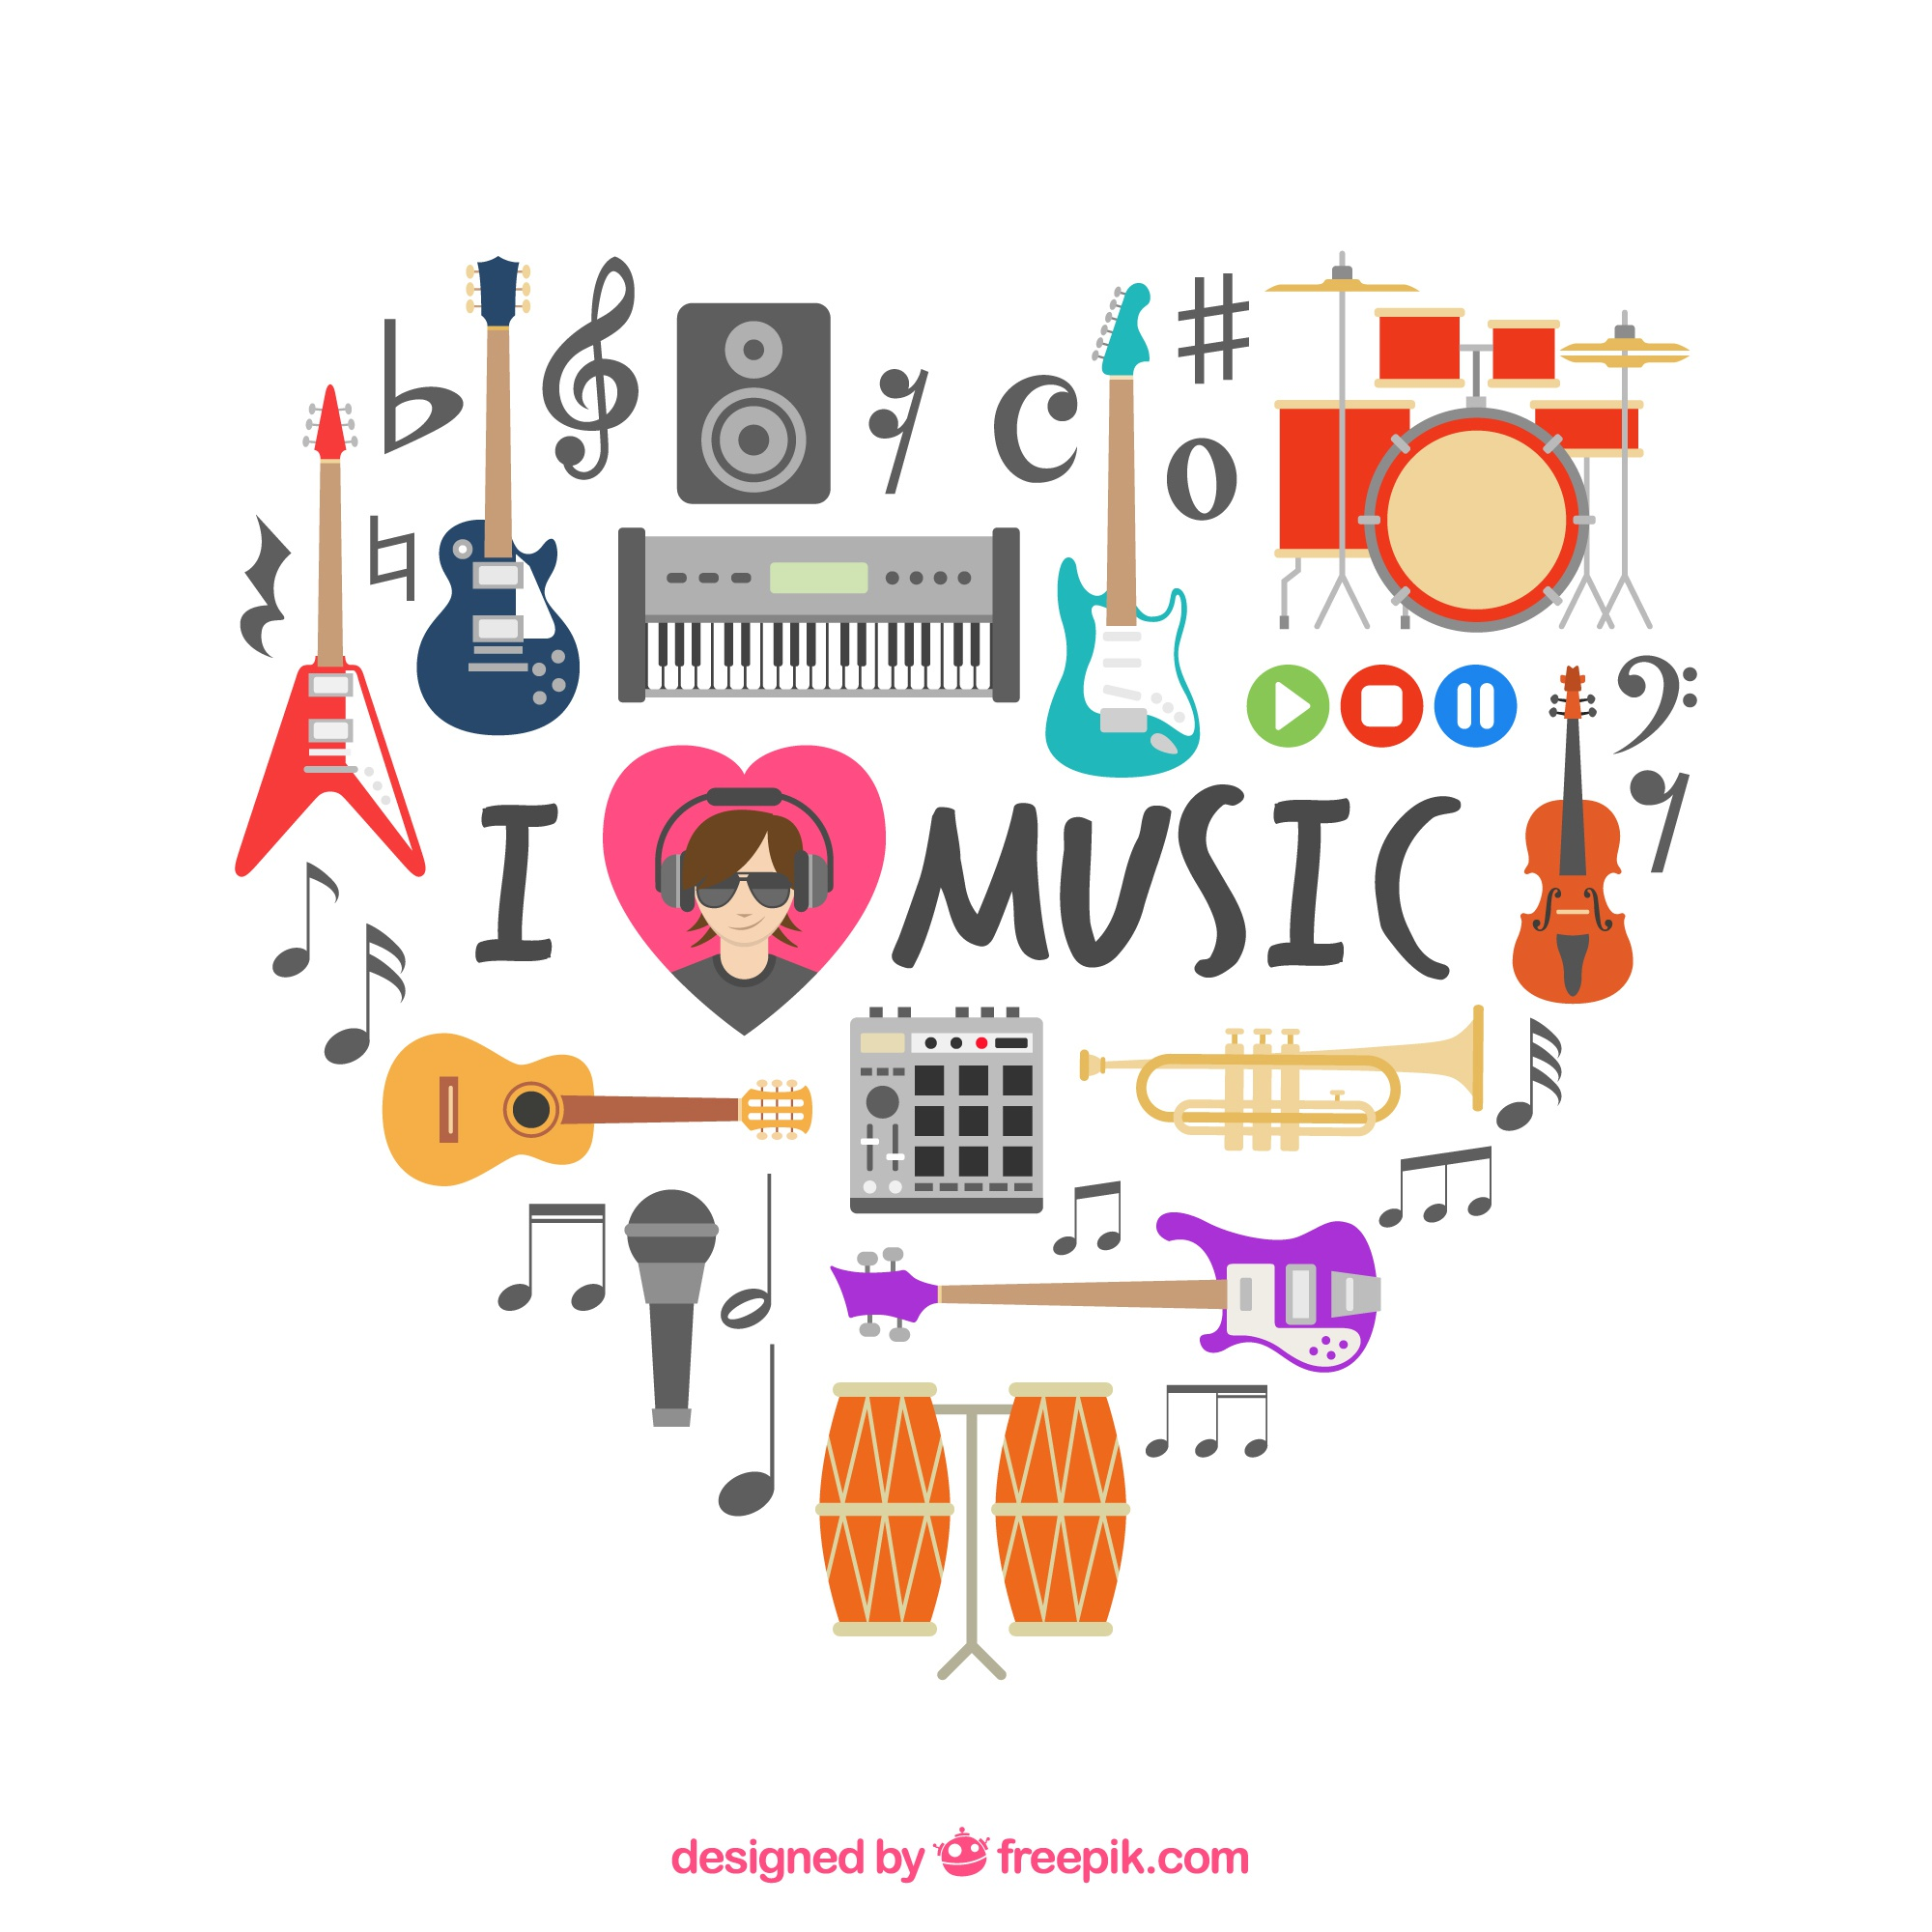 Heart of Musical icons gemacht